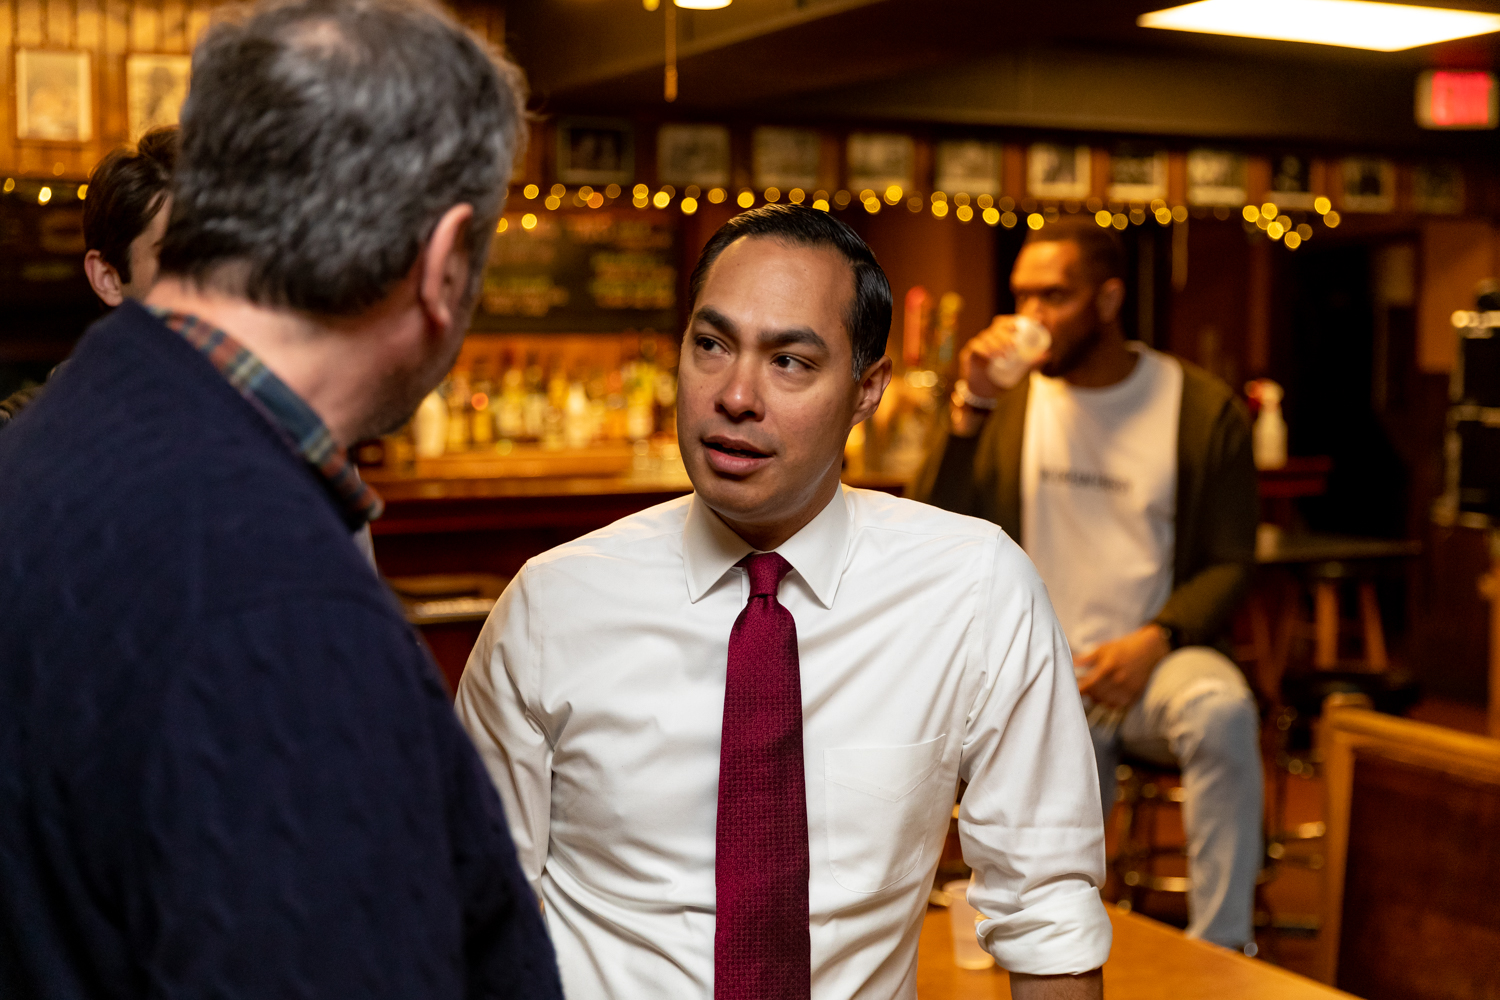 Julian Castro, former Secretary of Housing and Urban Development and current Democratic candidate for president takes questions from an attendee at The Mill before appearing on the Political Party Live podcast on Sunday, Apr. 14, 2019.